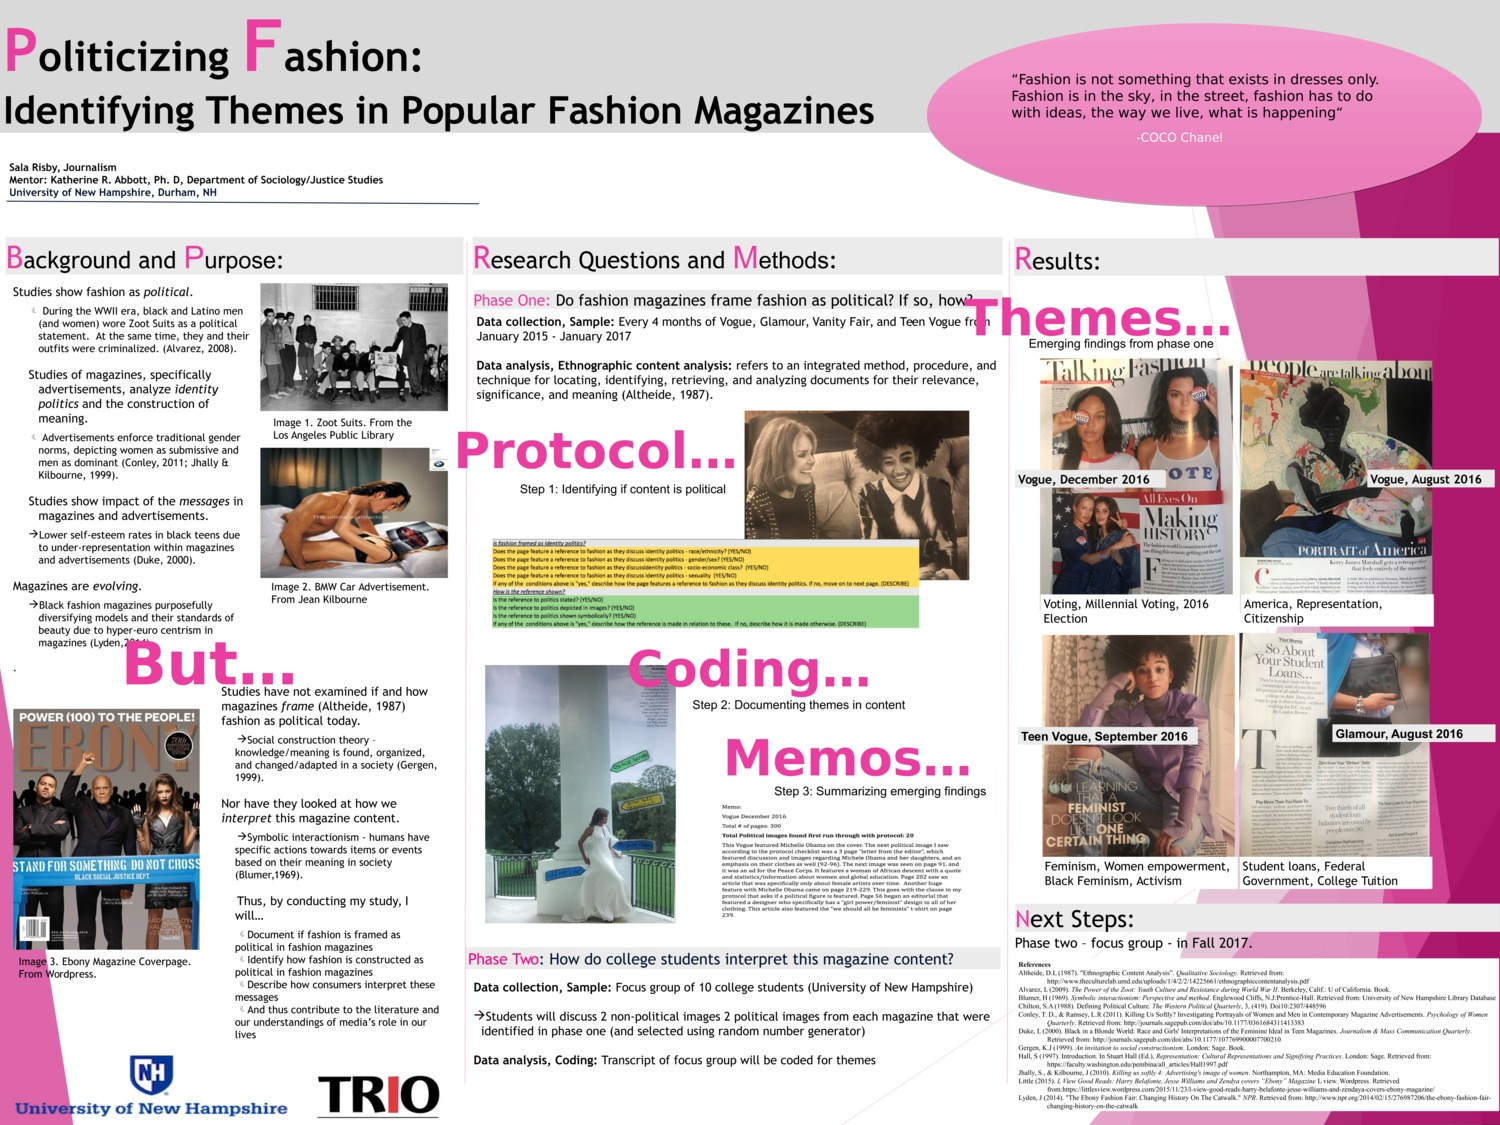 Politicizing Fashion: Identifying Themes In Popular Fashion Magazines by sbr2001